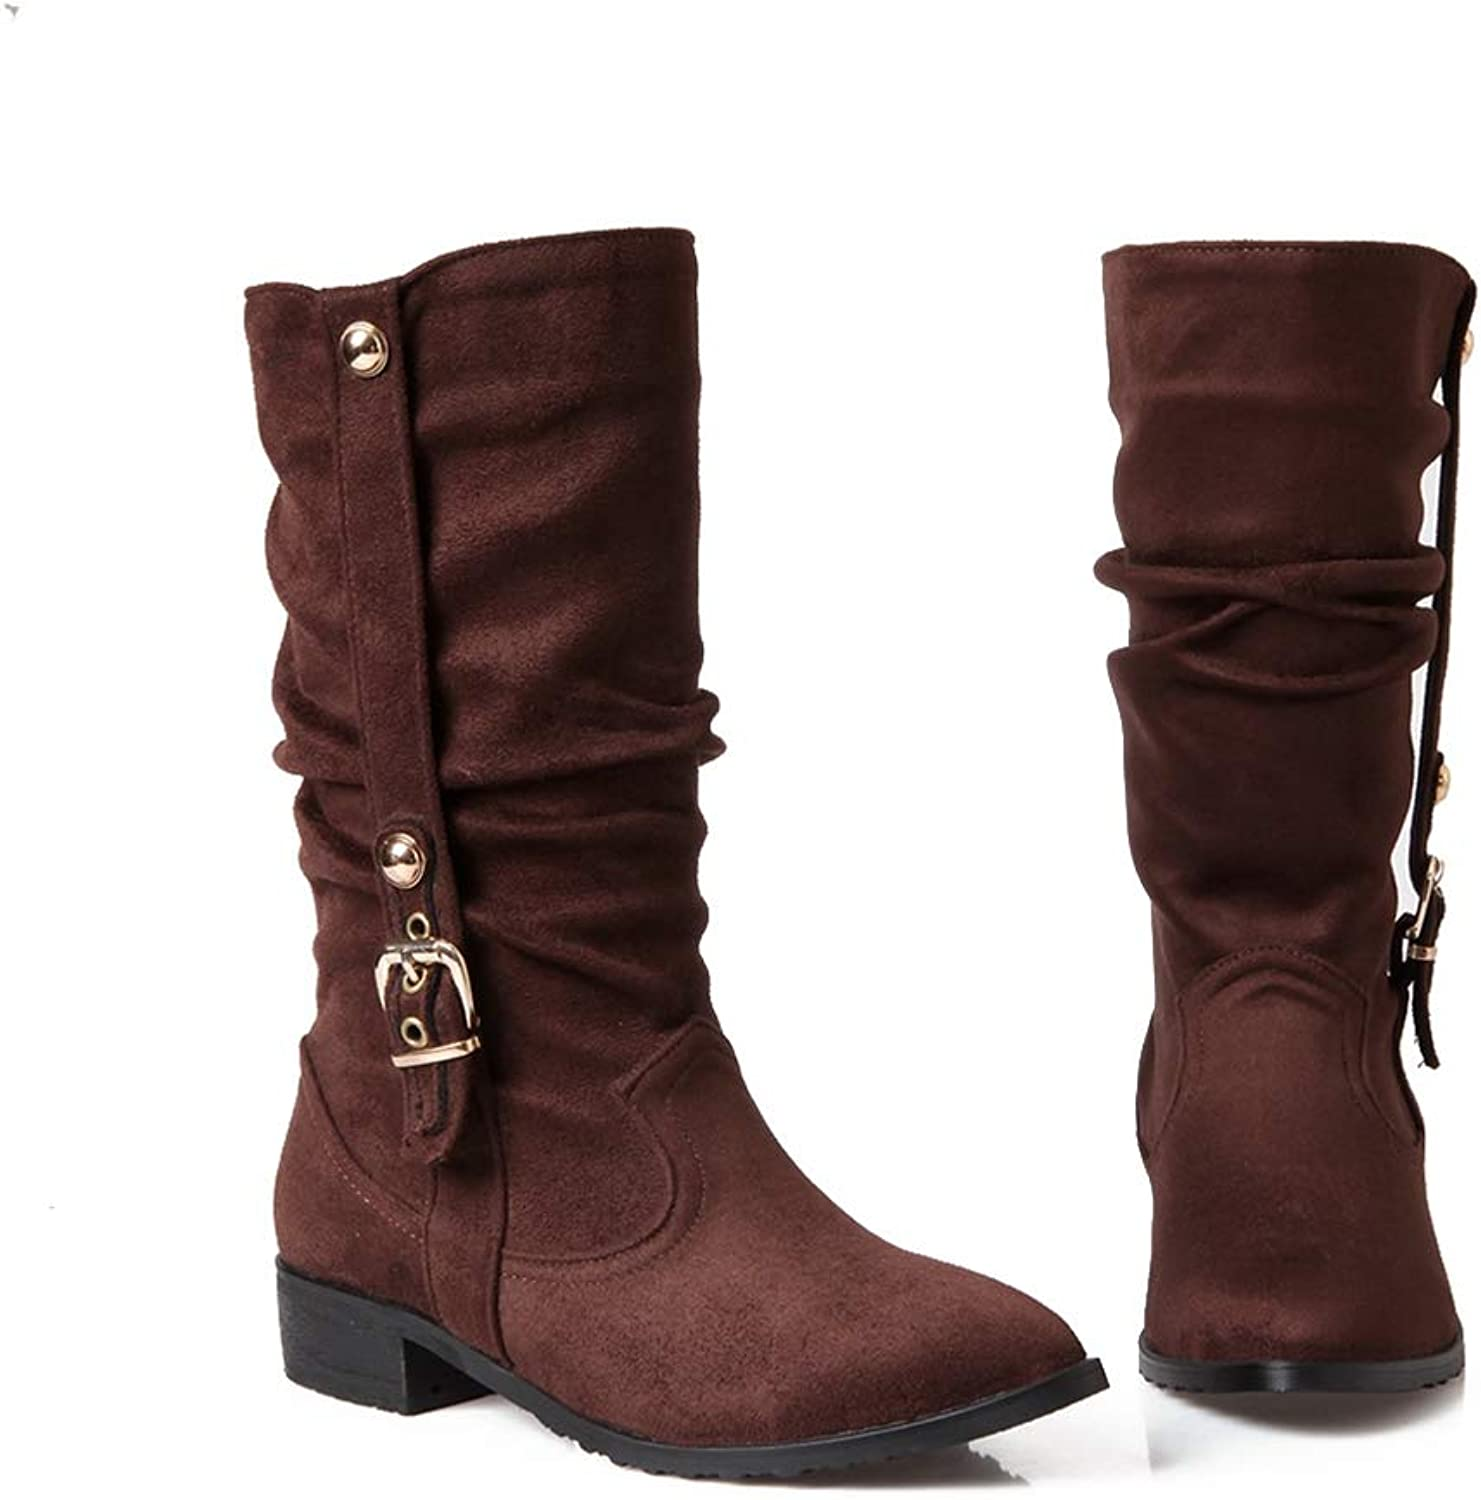 T-JULY Women Boots Fashion Flock Buckle Mid Calf Boots Square Heels Pointed Toe Women Autumn Winter Boots